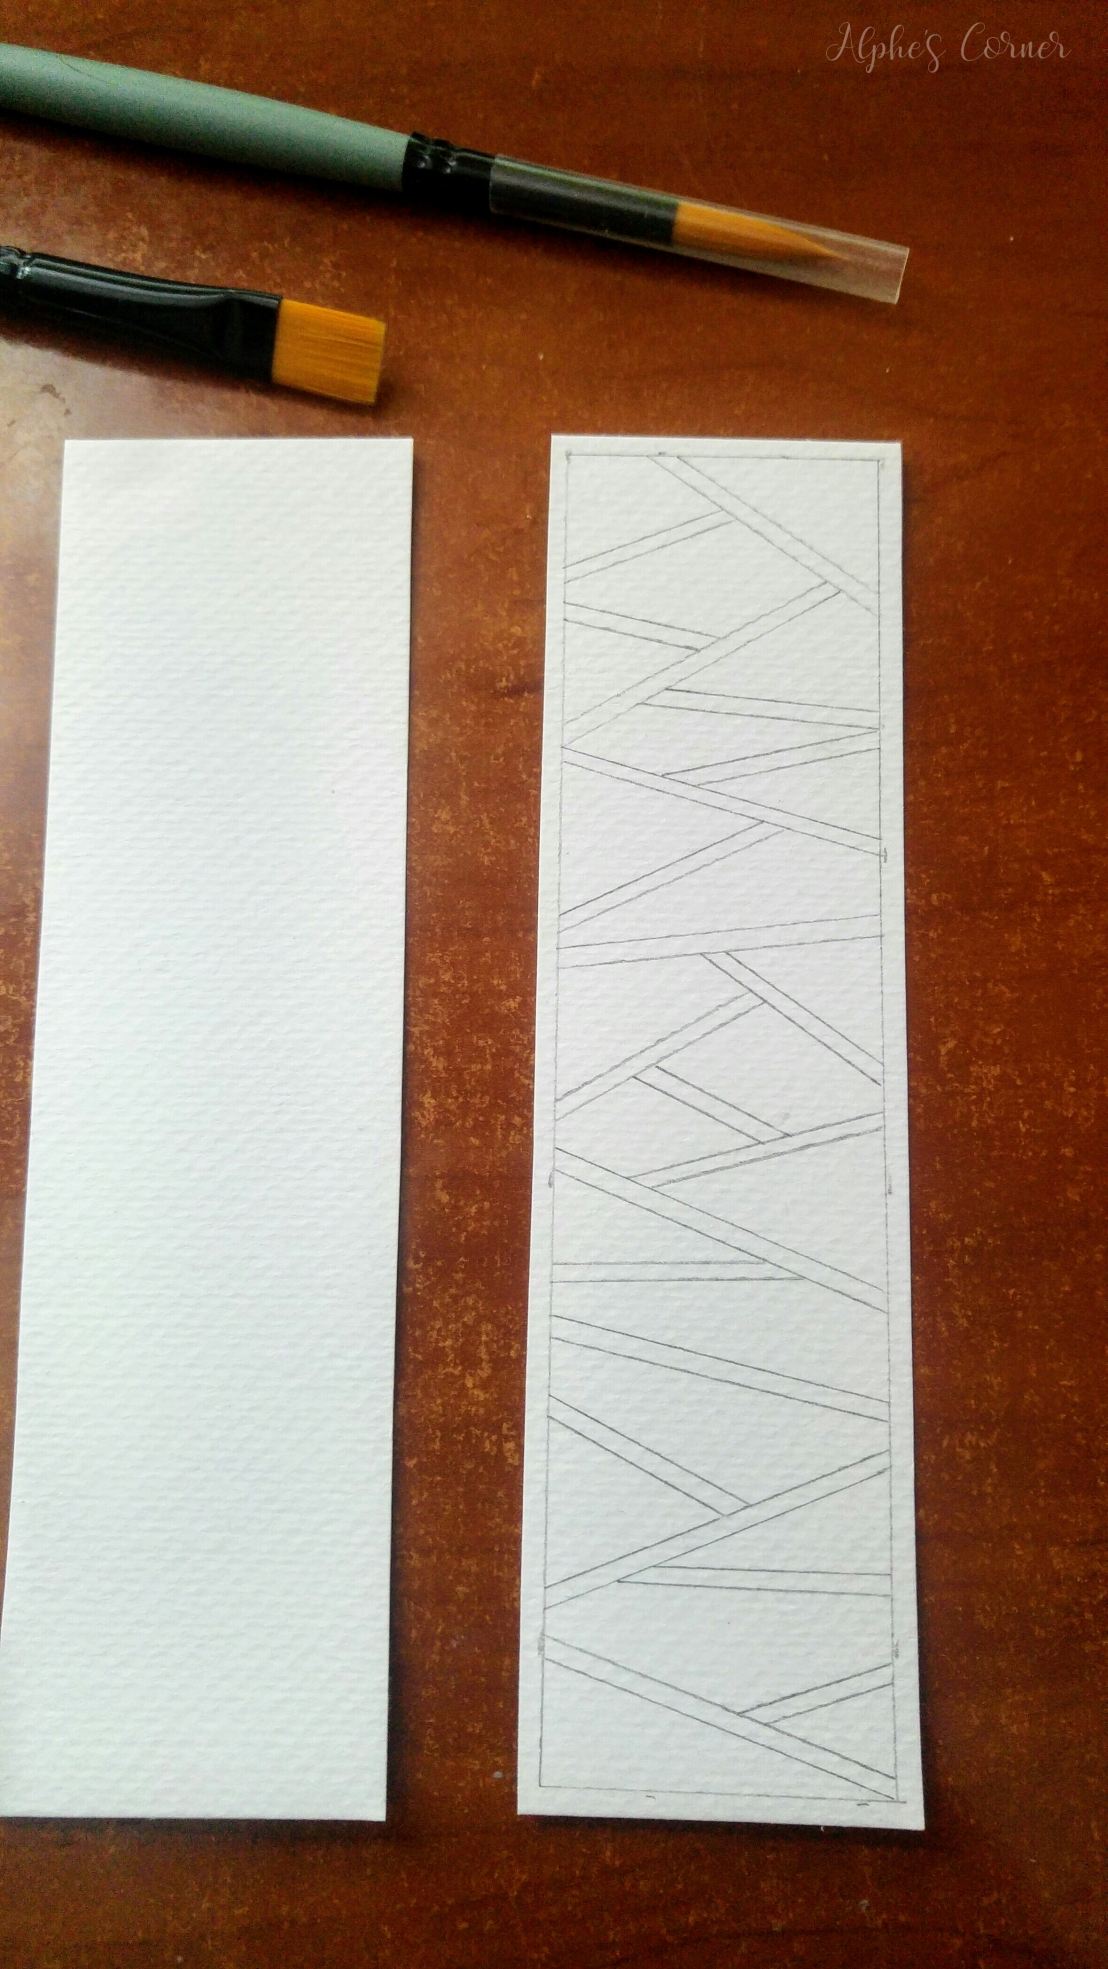 Sketching a geometric pattern on a bookmark